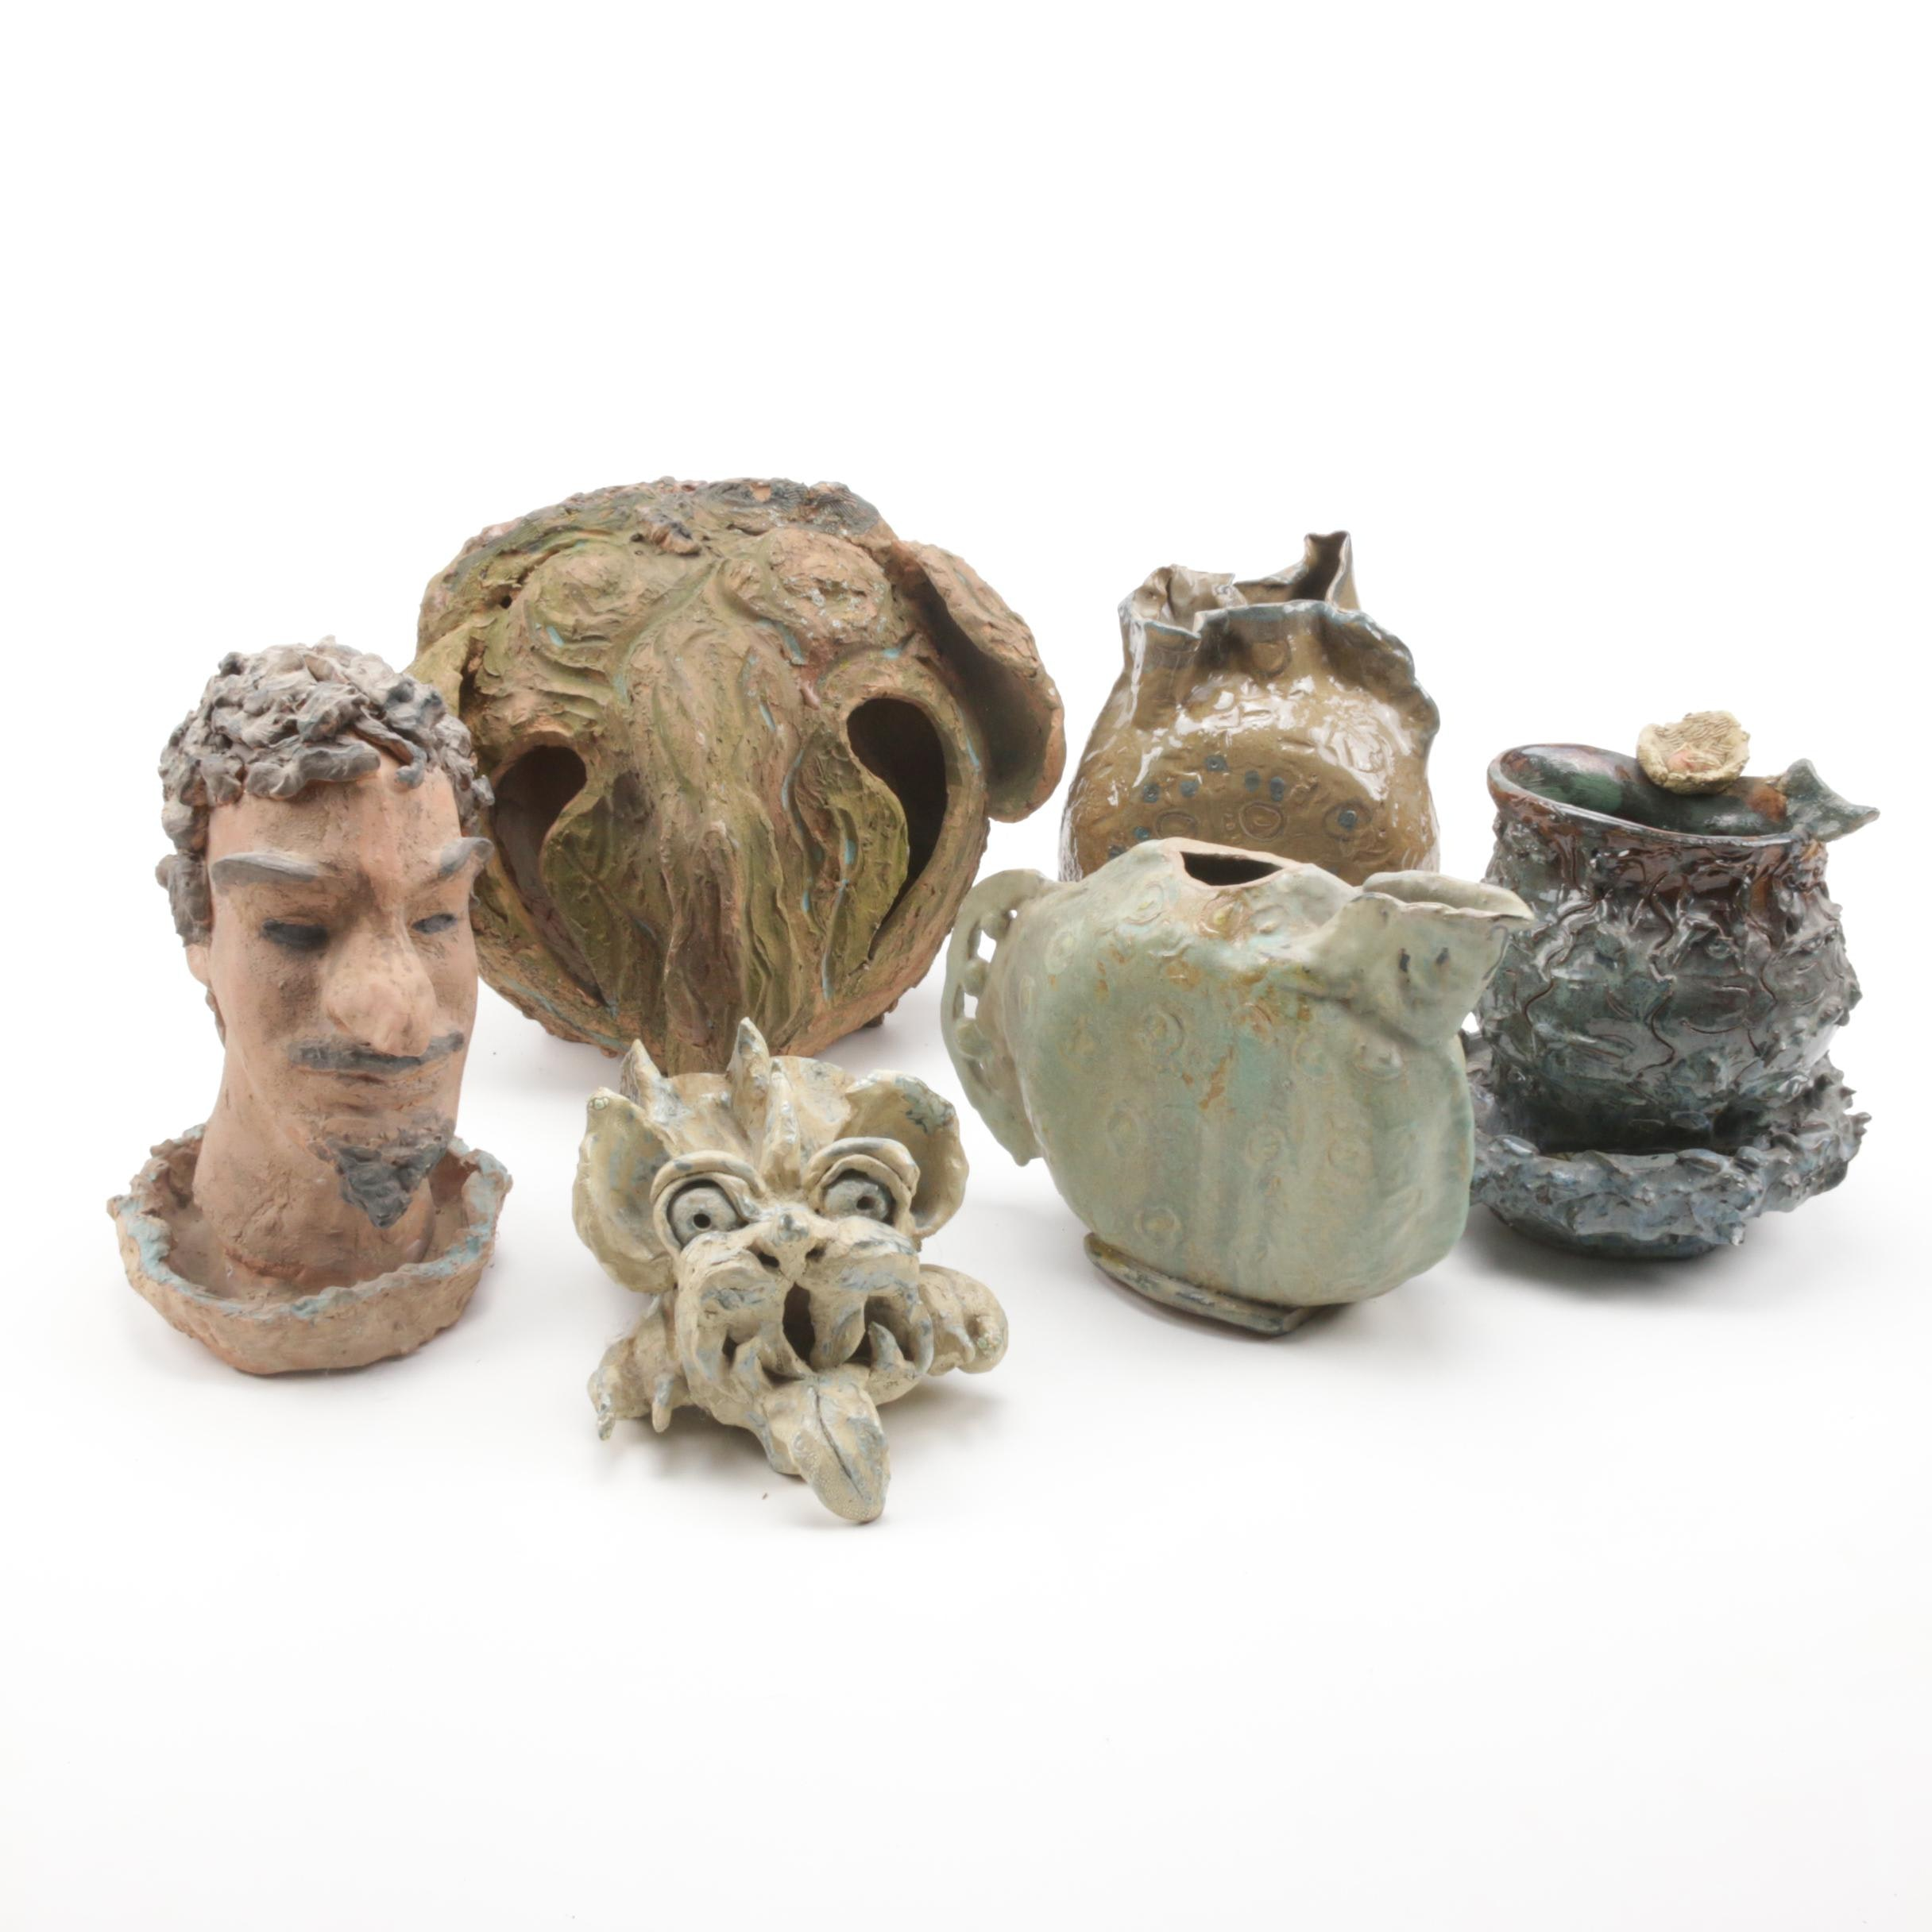 Folk Art Pottery Sculptures and Vases